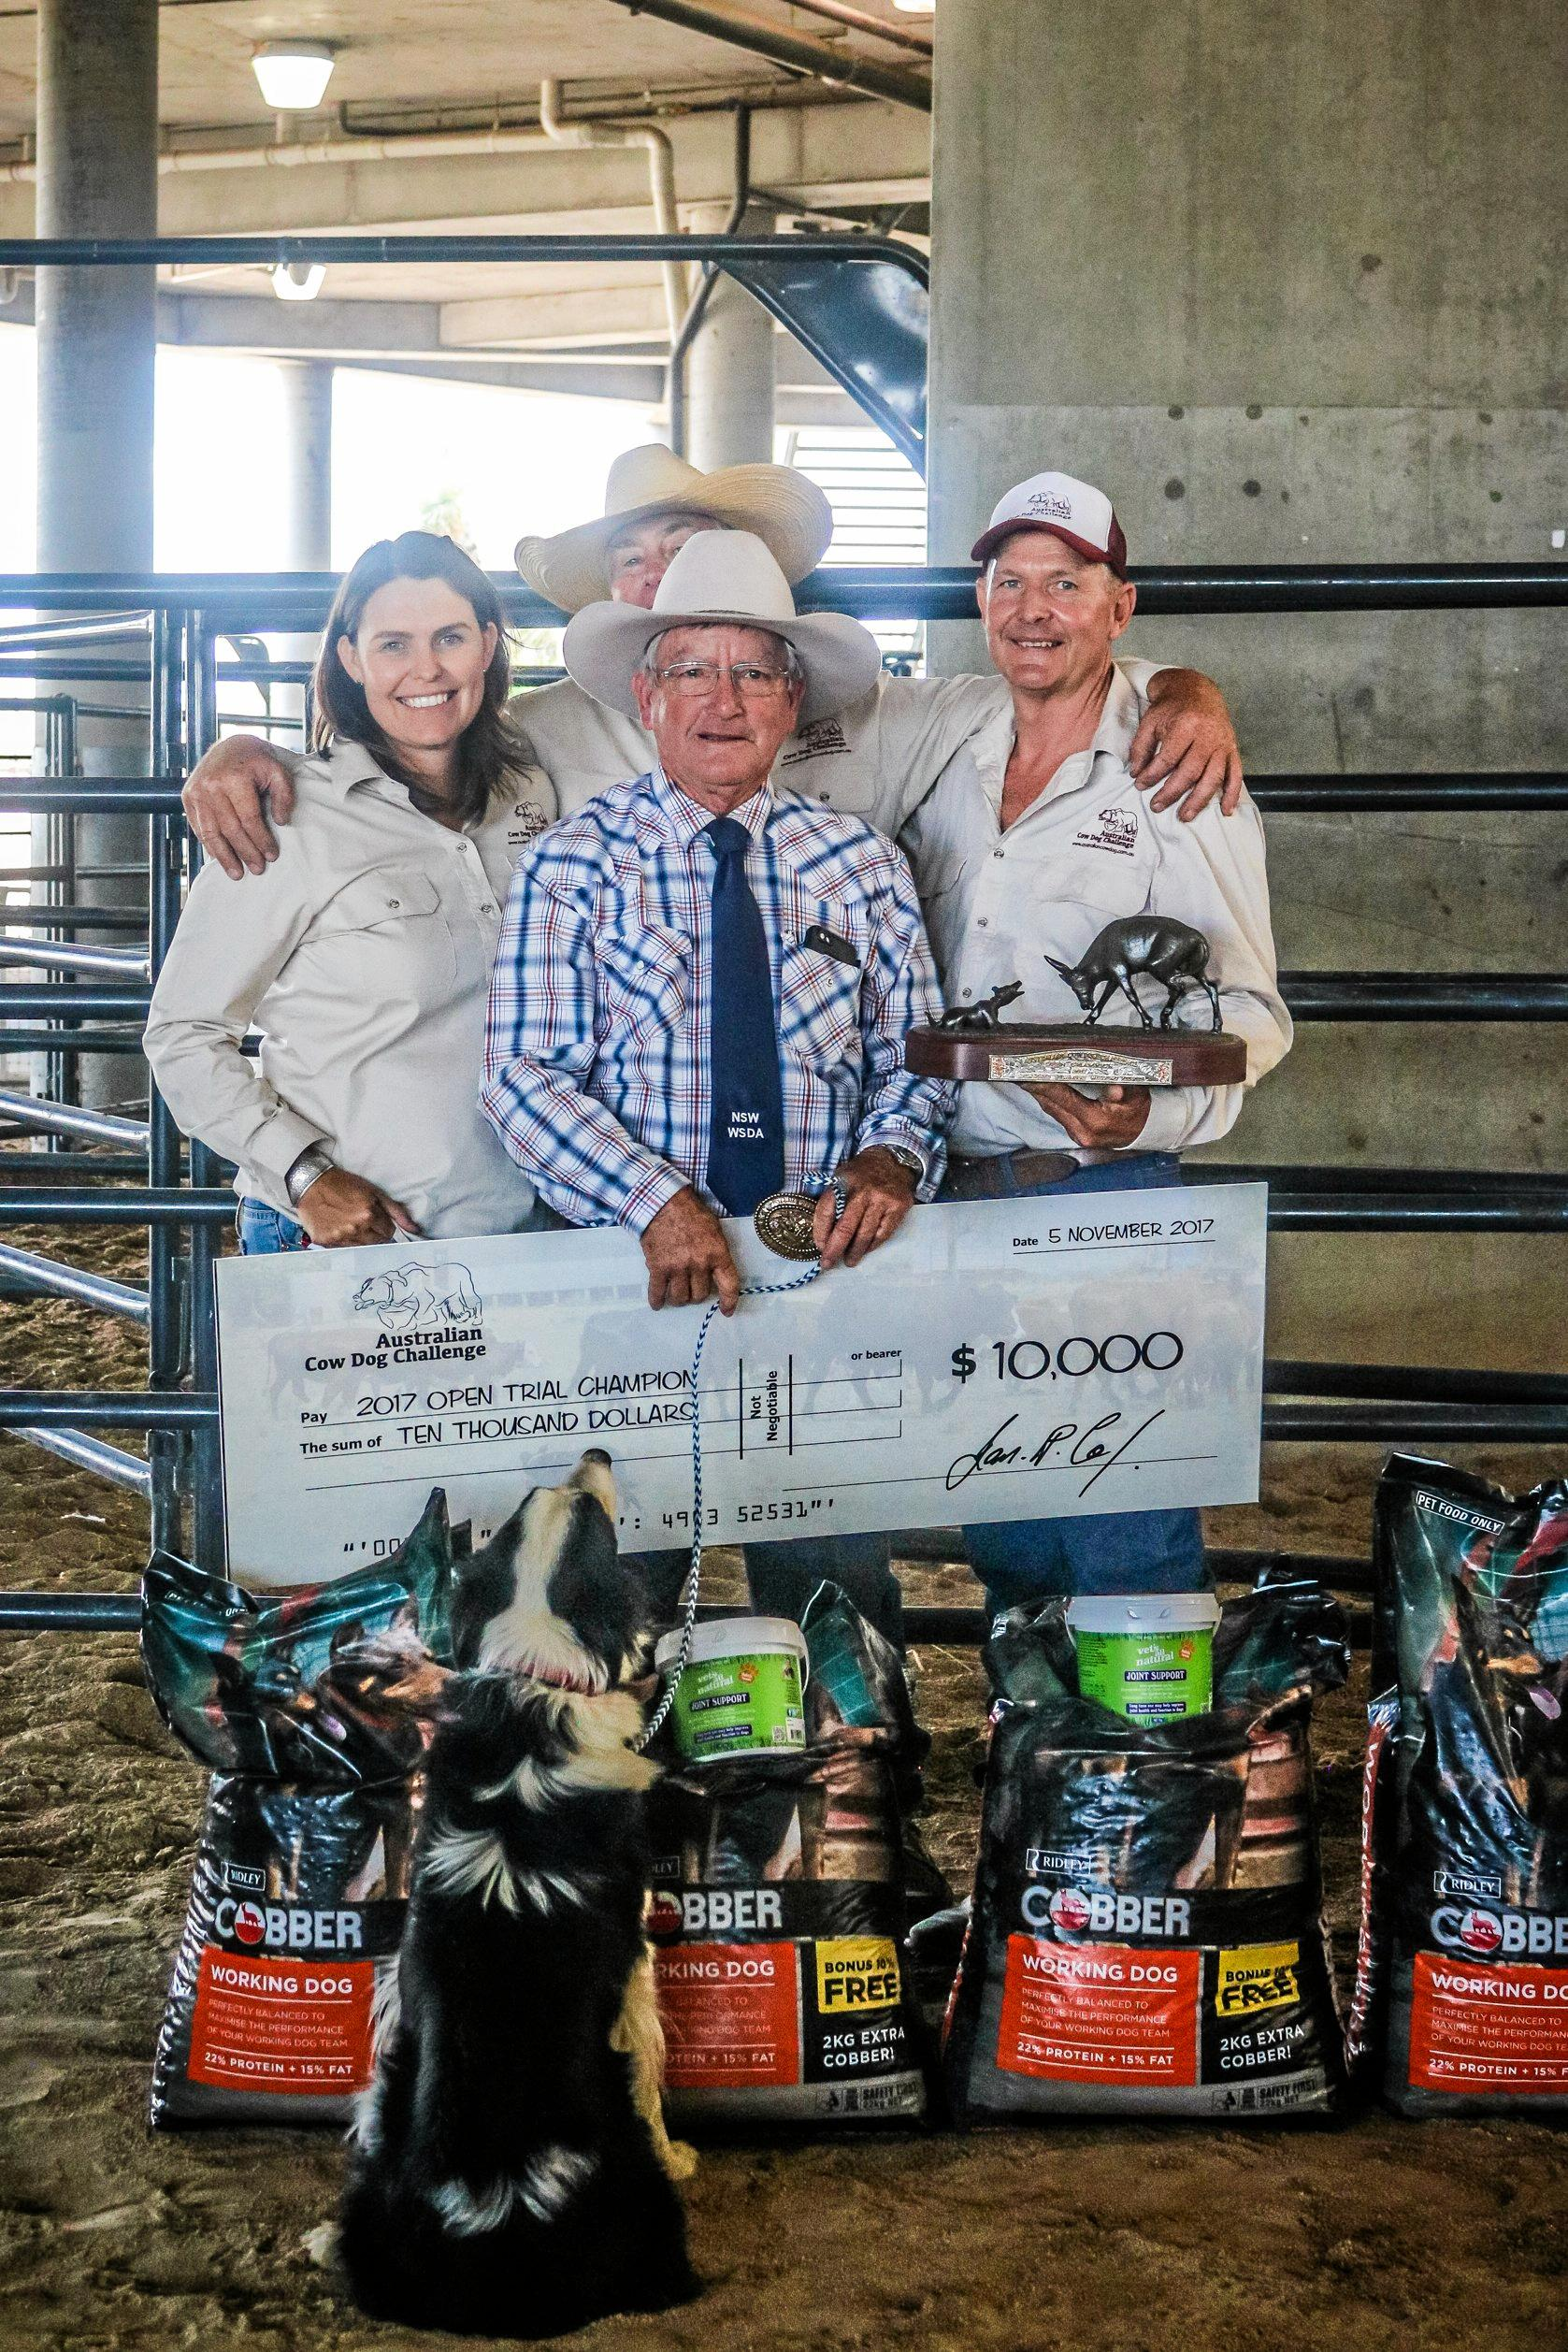 CHAMPION EFFORT: Robert Johnston with his winning cheque, with Australian Working Cow Dog organisers Ian Cox, Tim McVey and Maree Balmain.